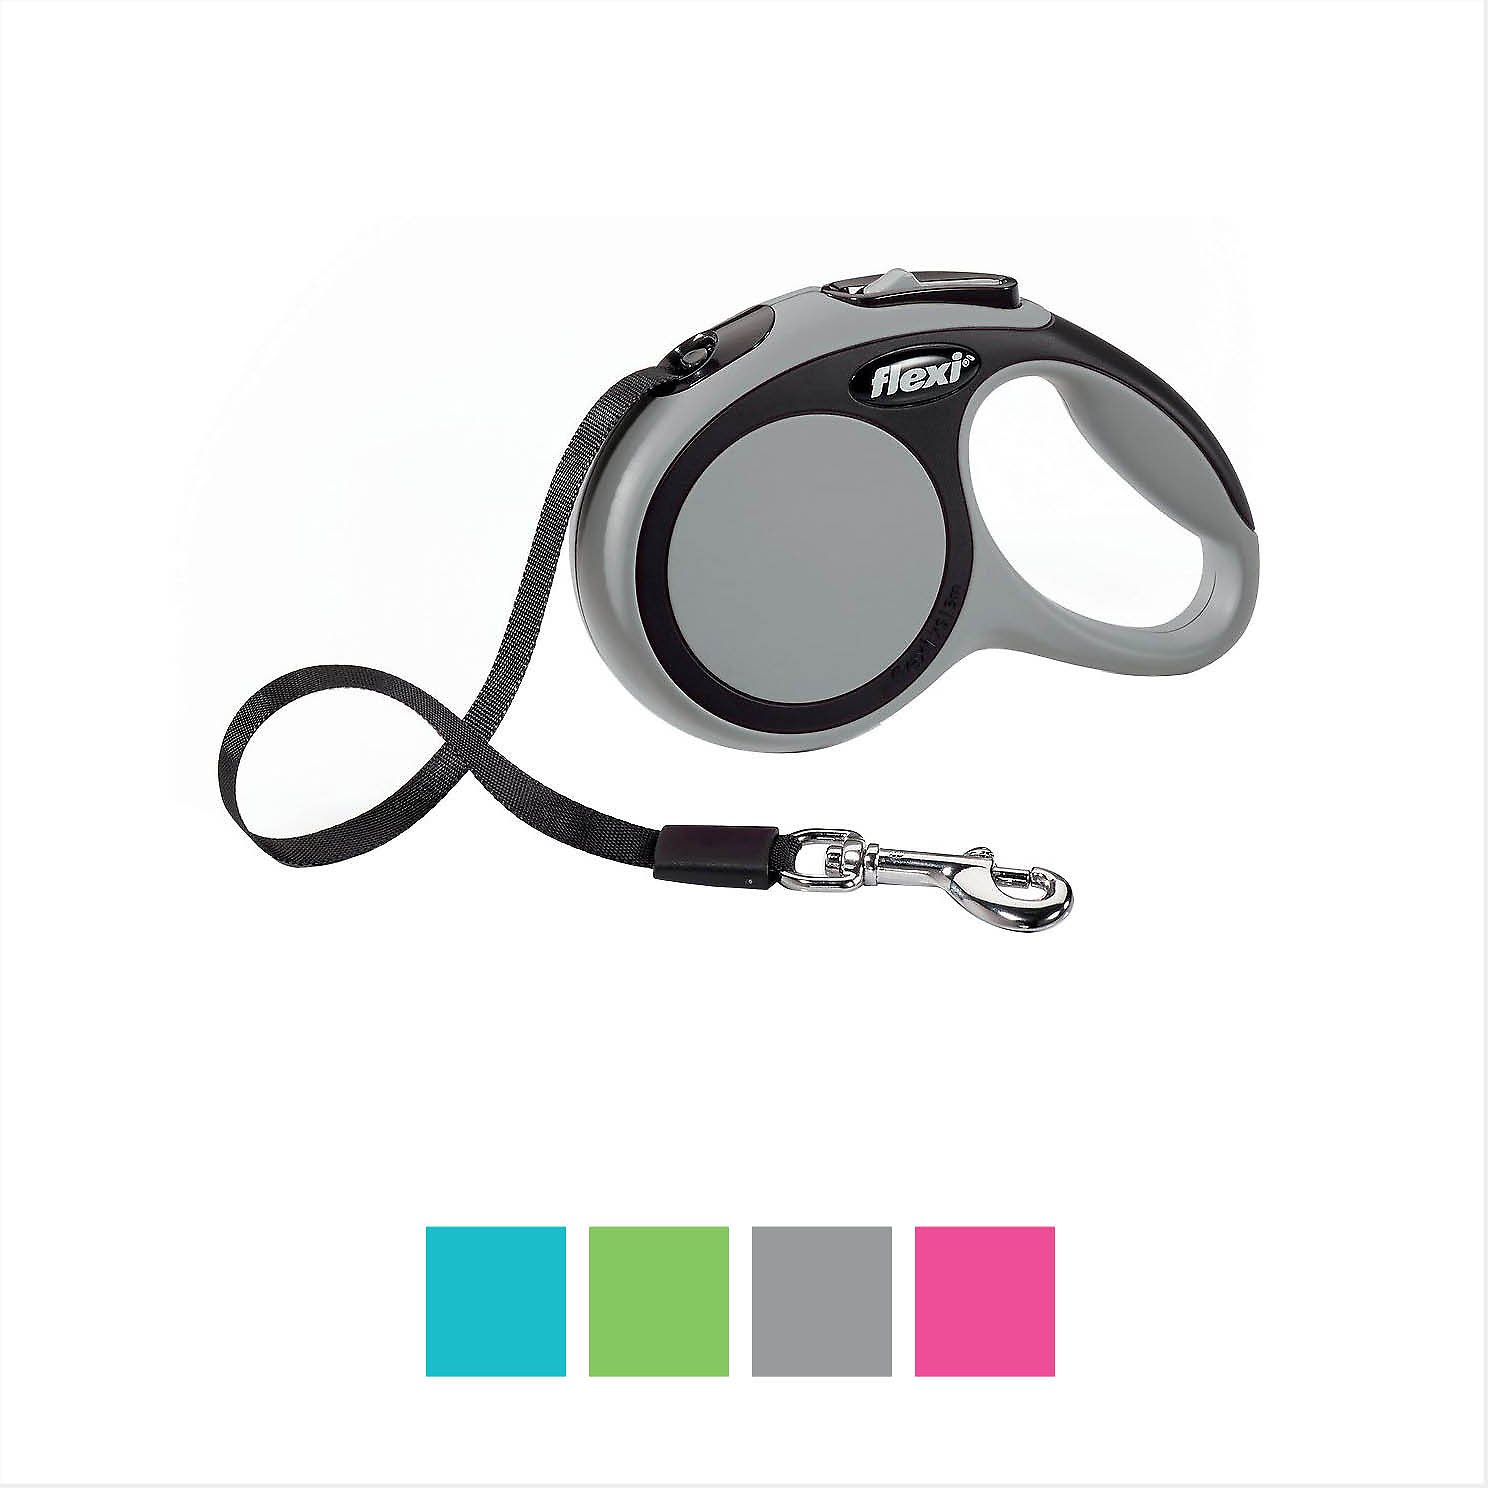 Flexi New Comfort Retractable Tape Dog Leash Image